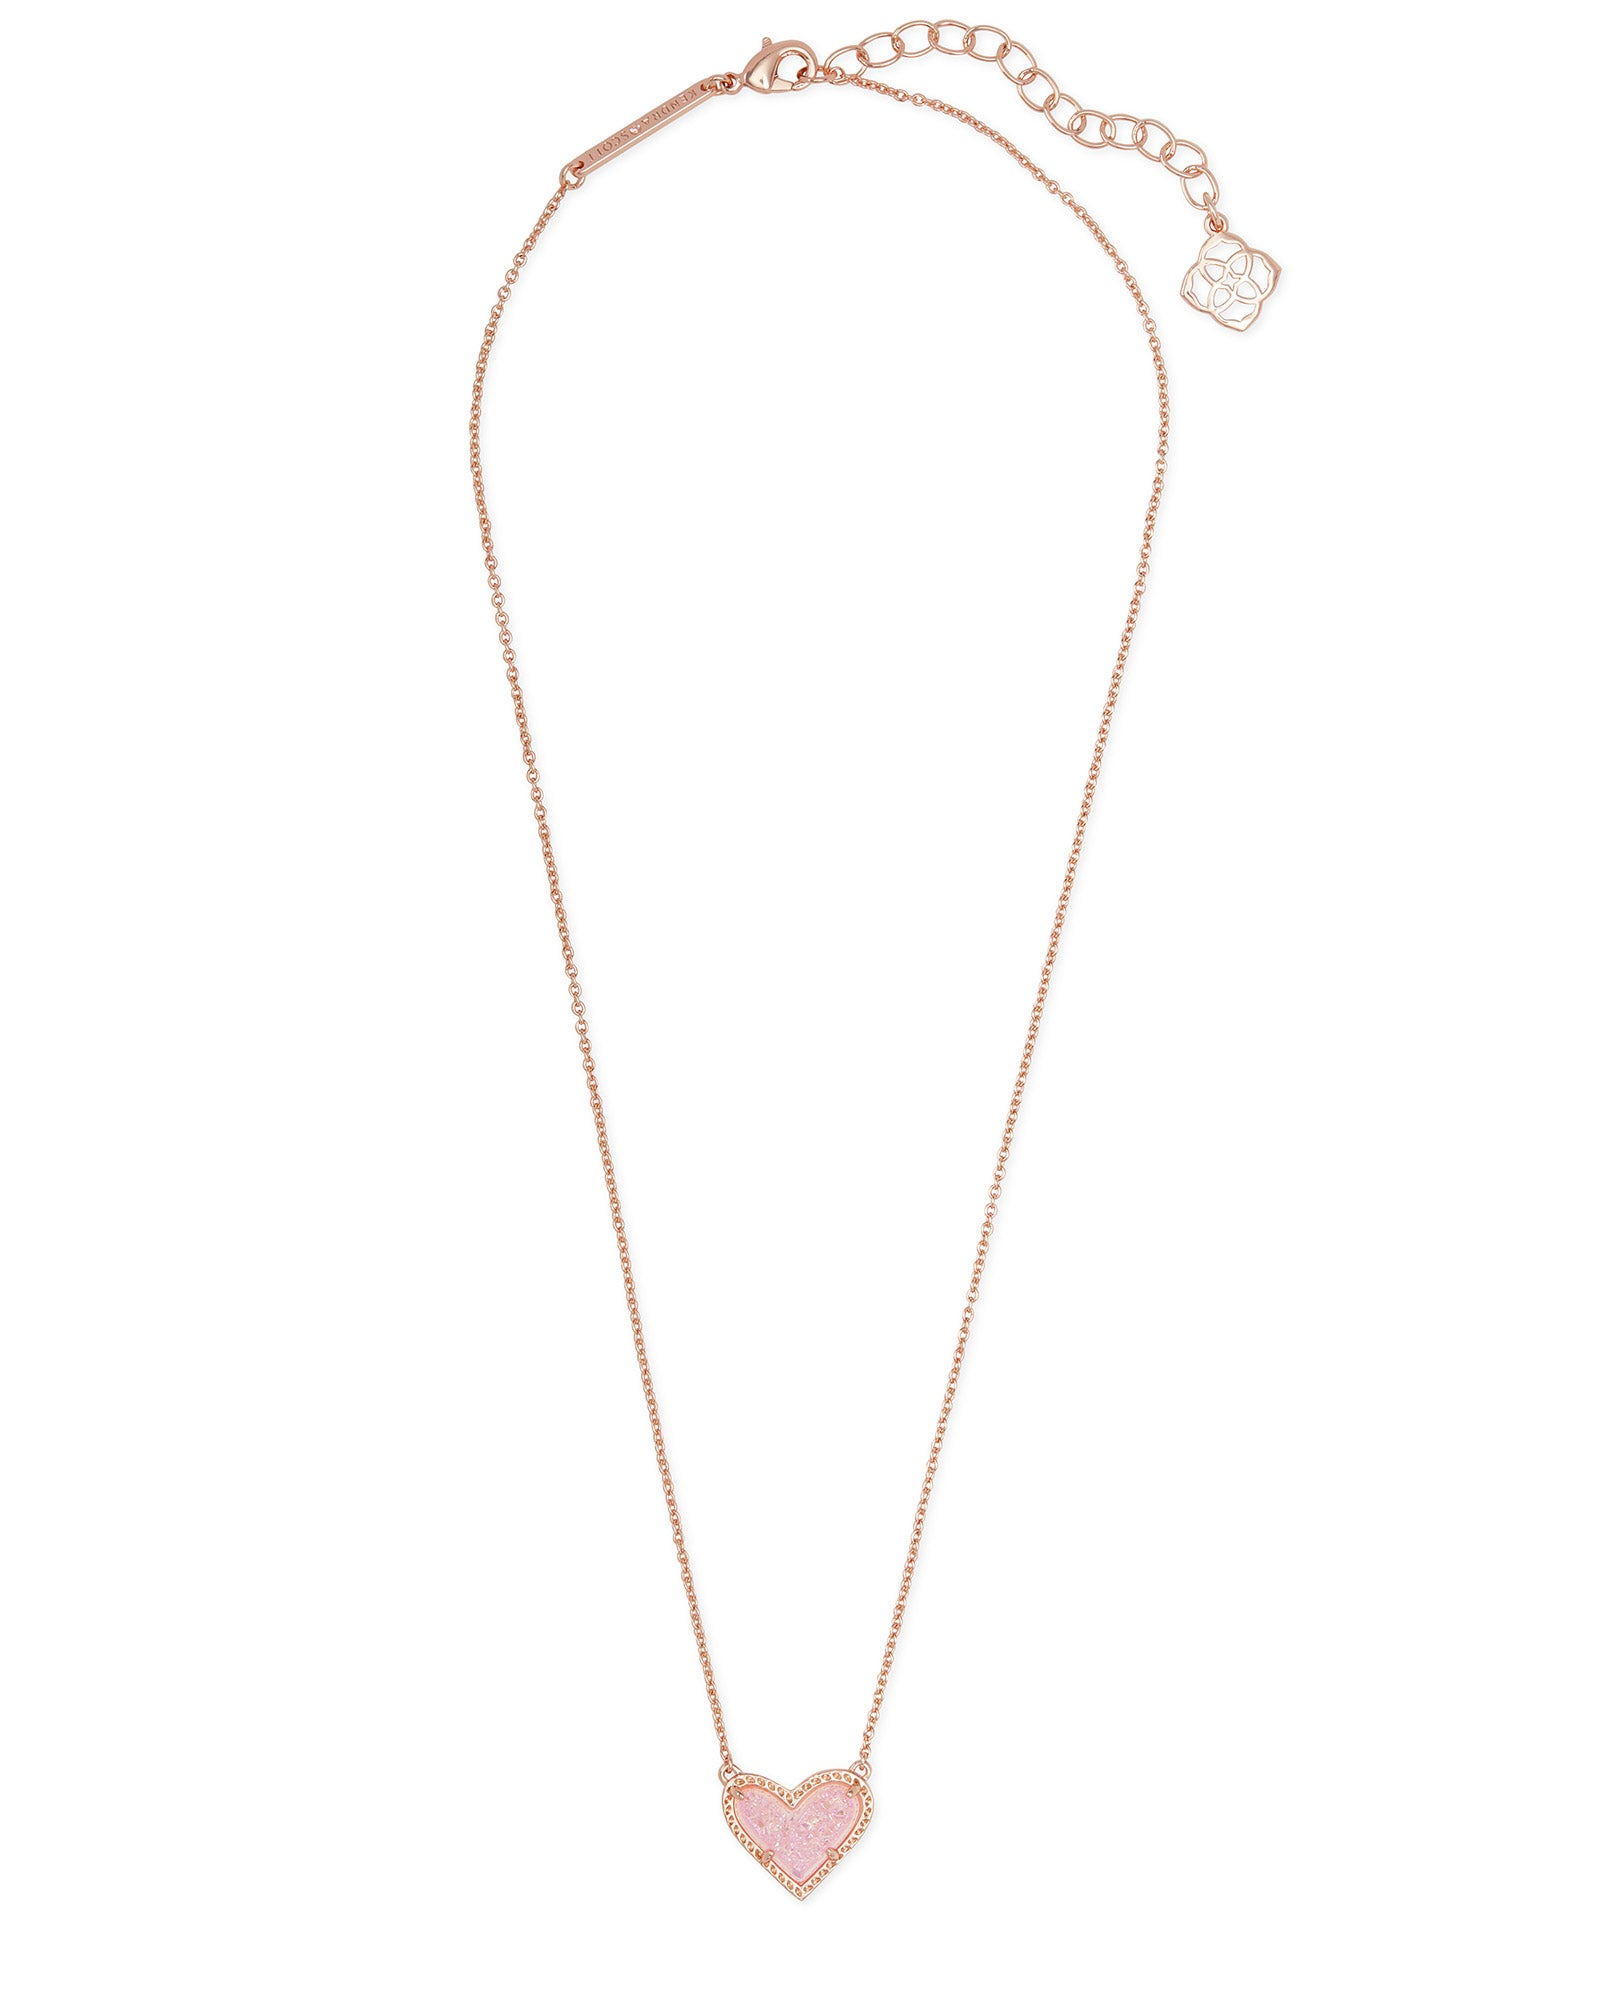 Ari Heart Short Necklace in Rose Gold